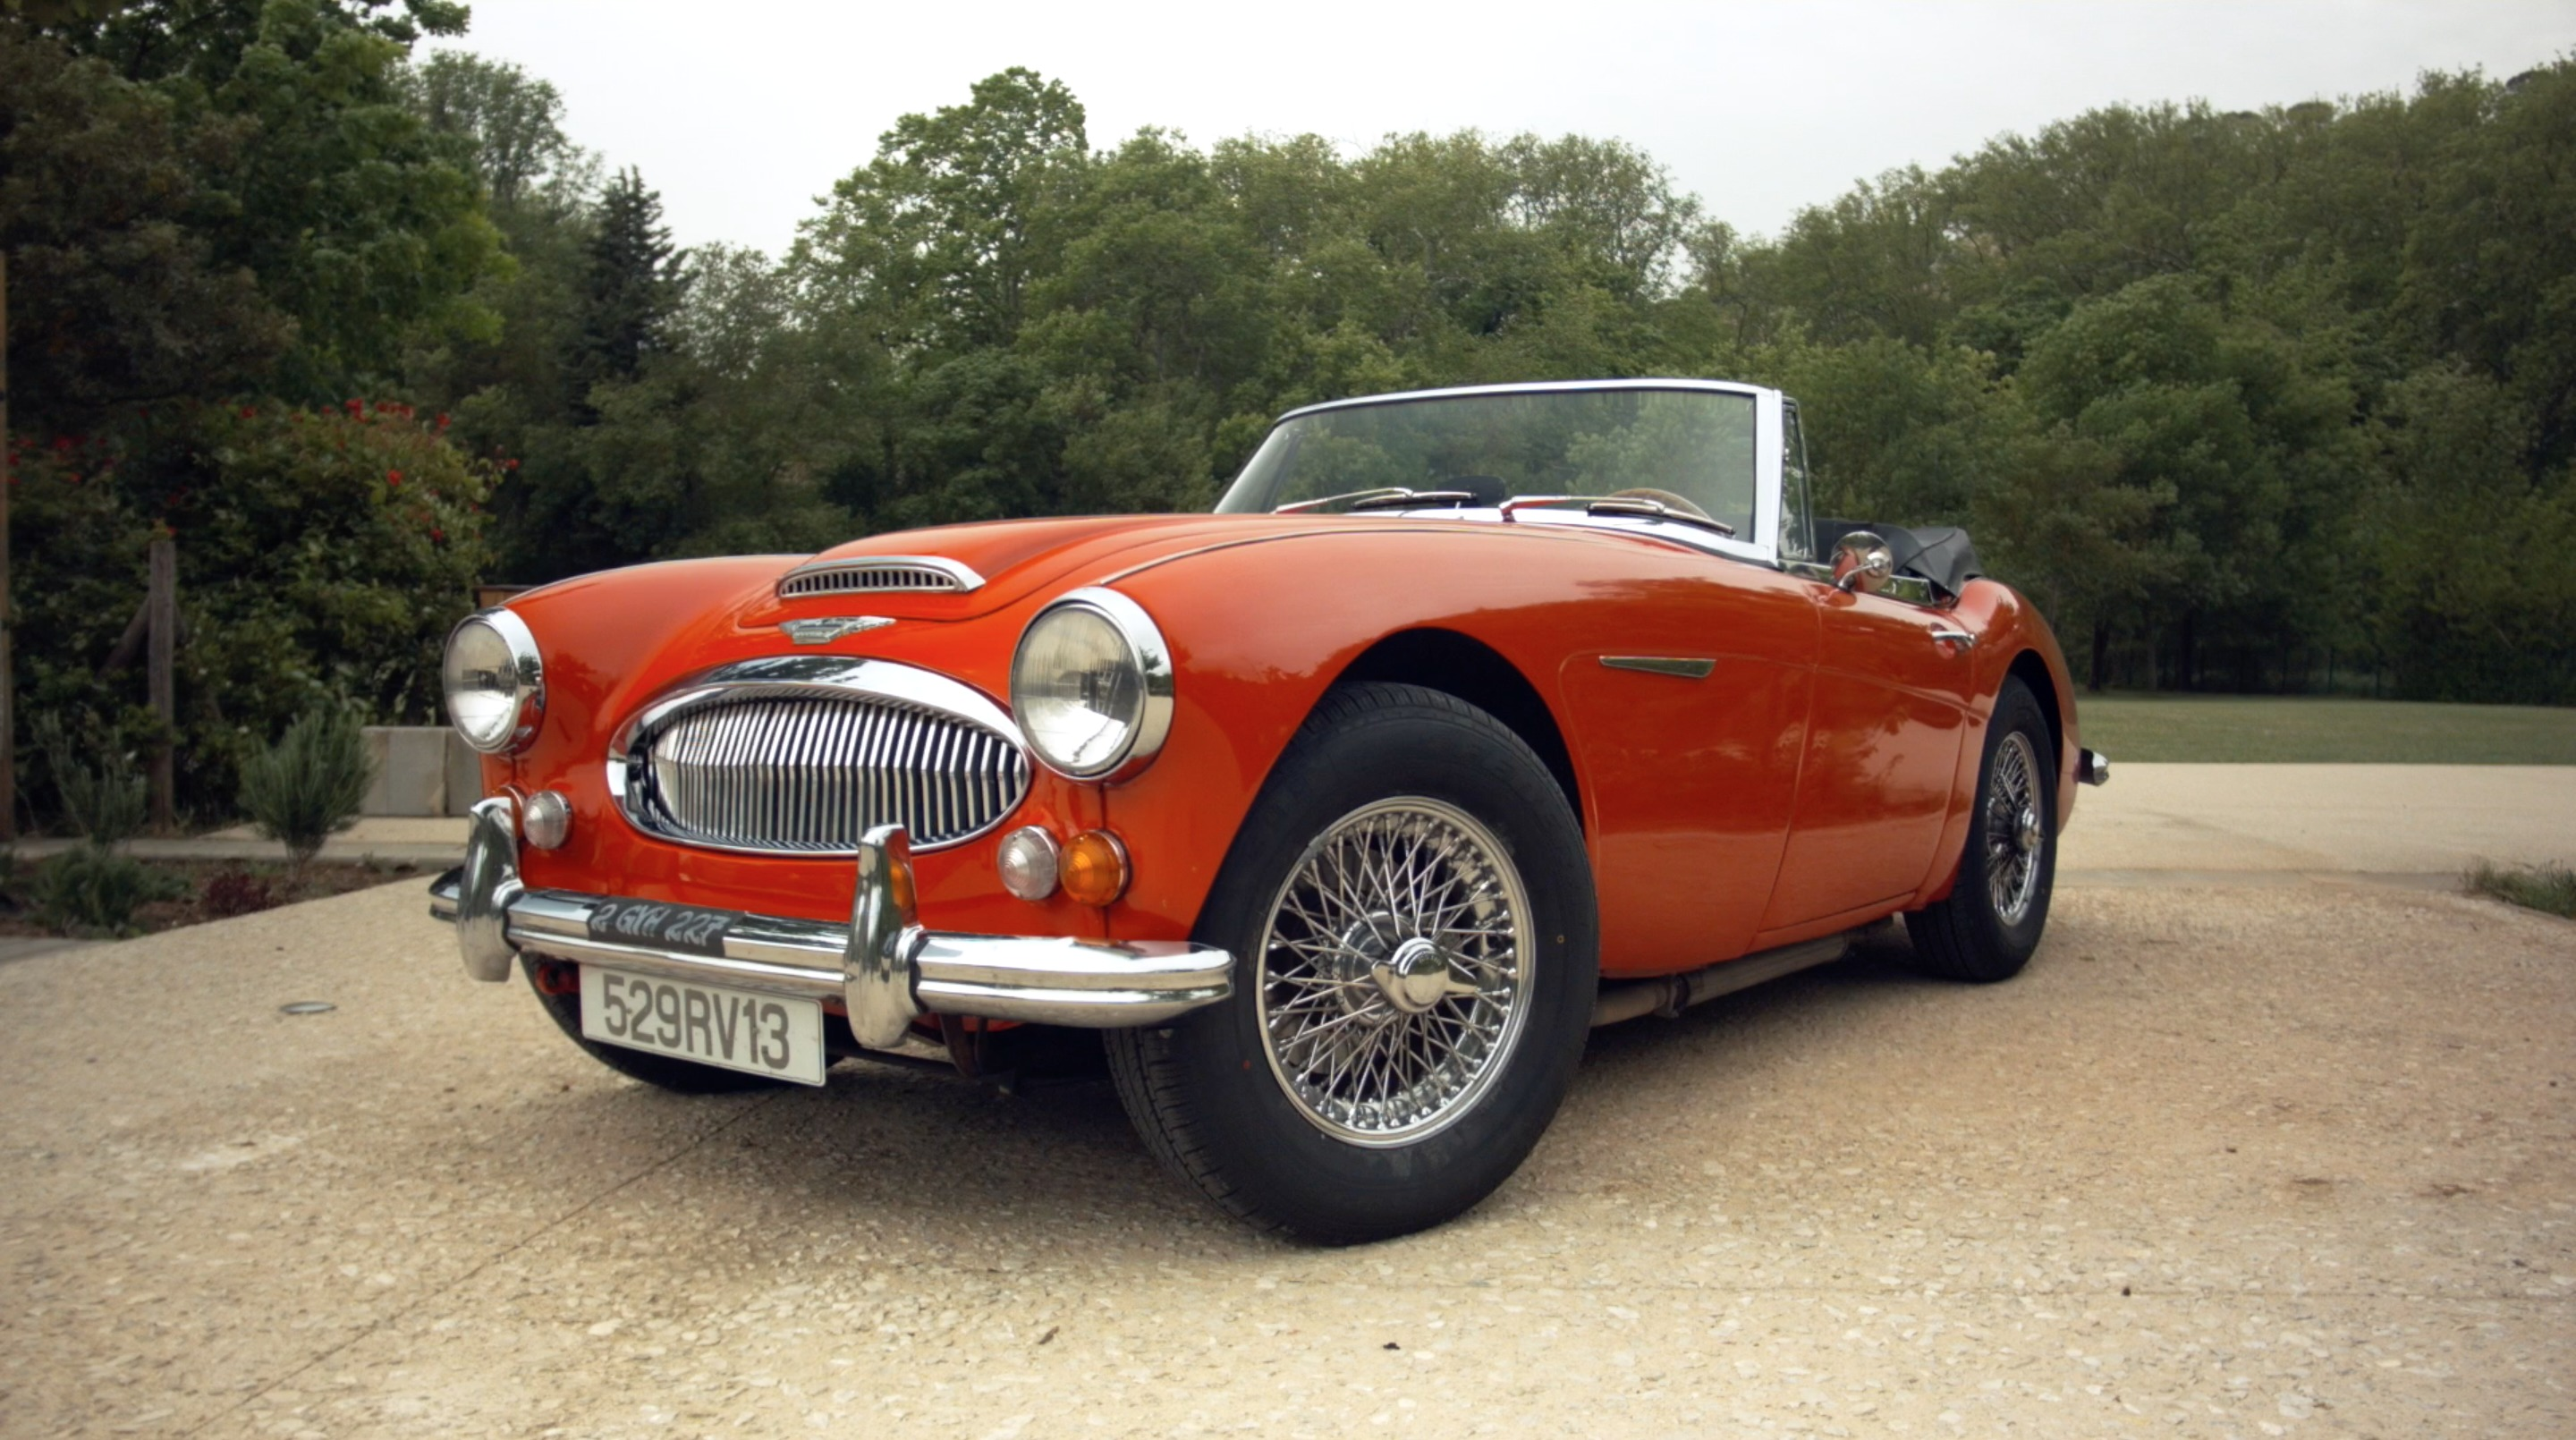 vid o la minute du propri taire austin healey 3000 mk3. Black Bedroom Furniture Sets. Home Design Ideas